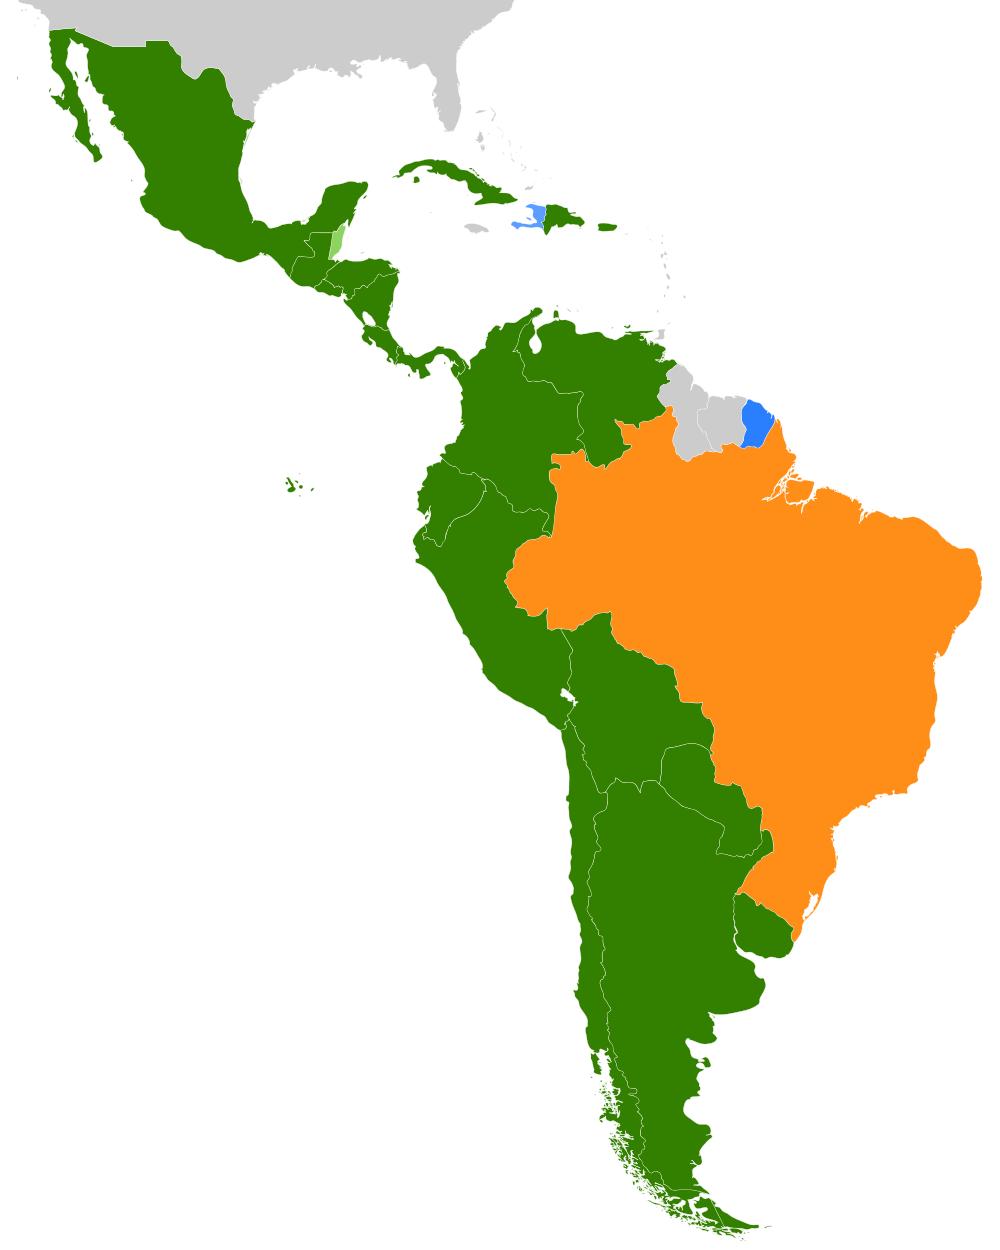 1000px map romancelatinamericagg 10001250 pixels the linguistic map of latin america spanish in green portuguese in orange and french in blue gumiabroncs Gallery